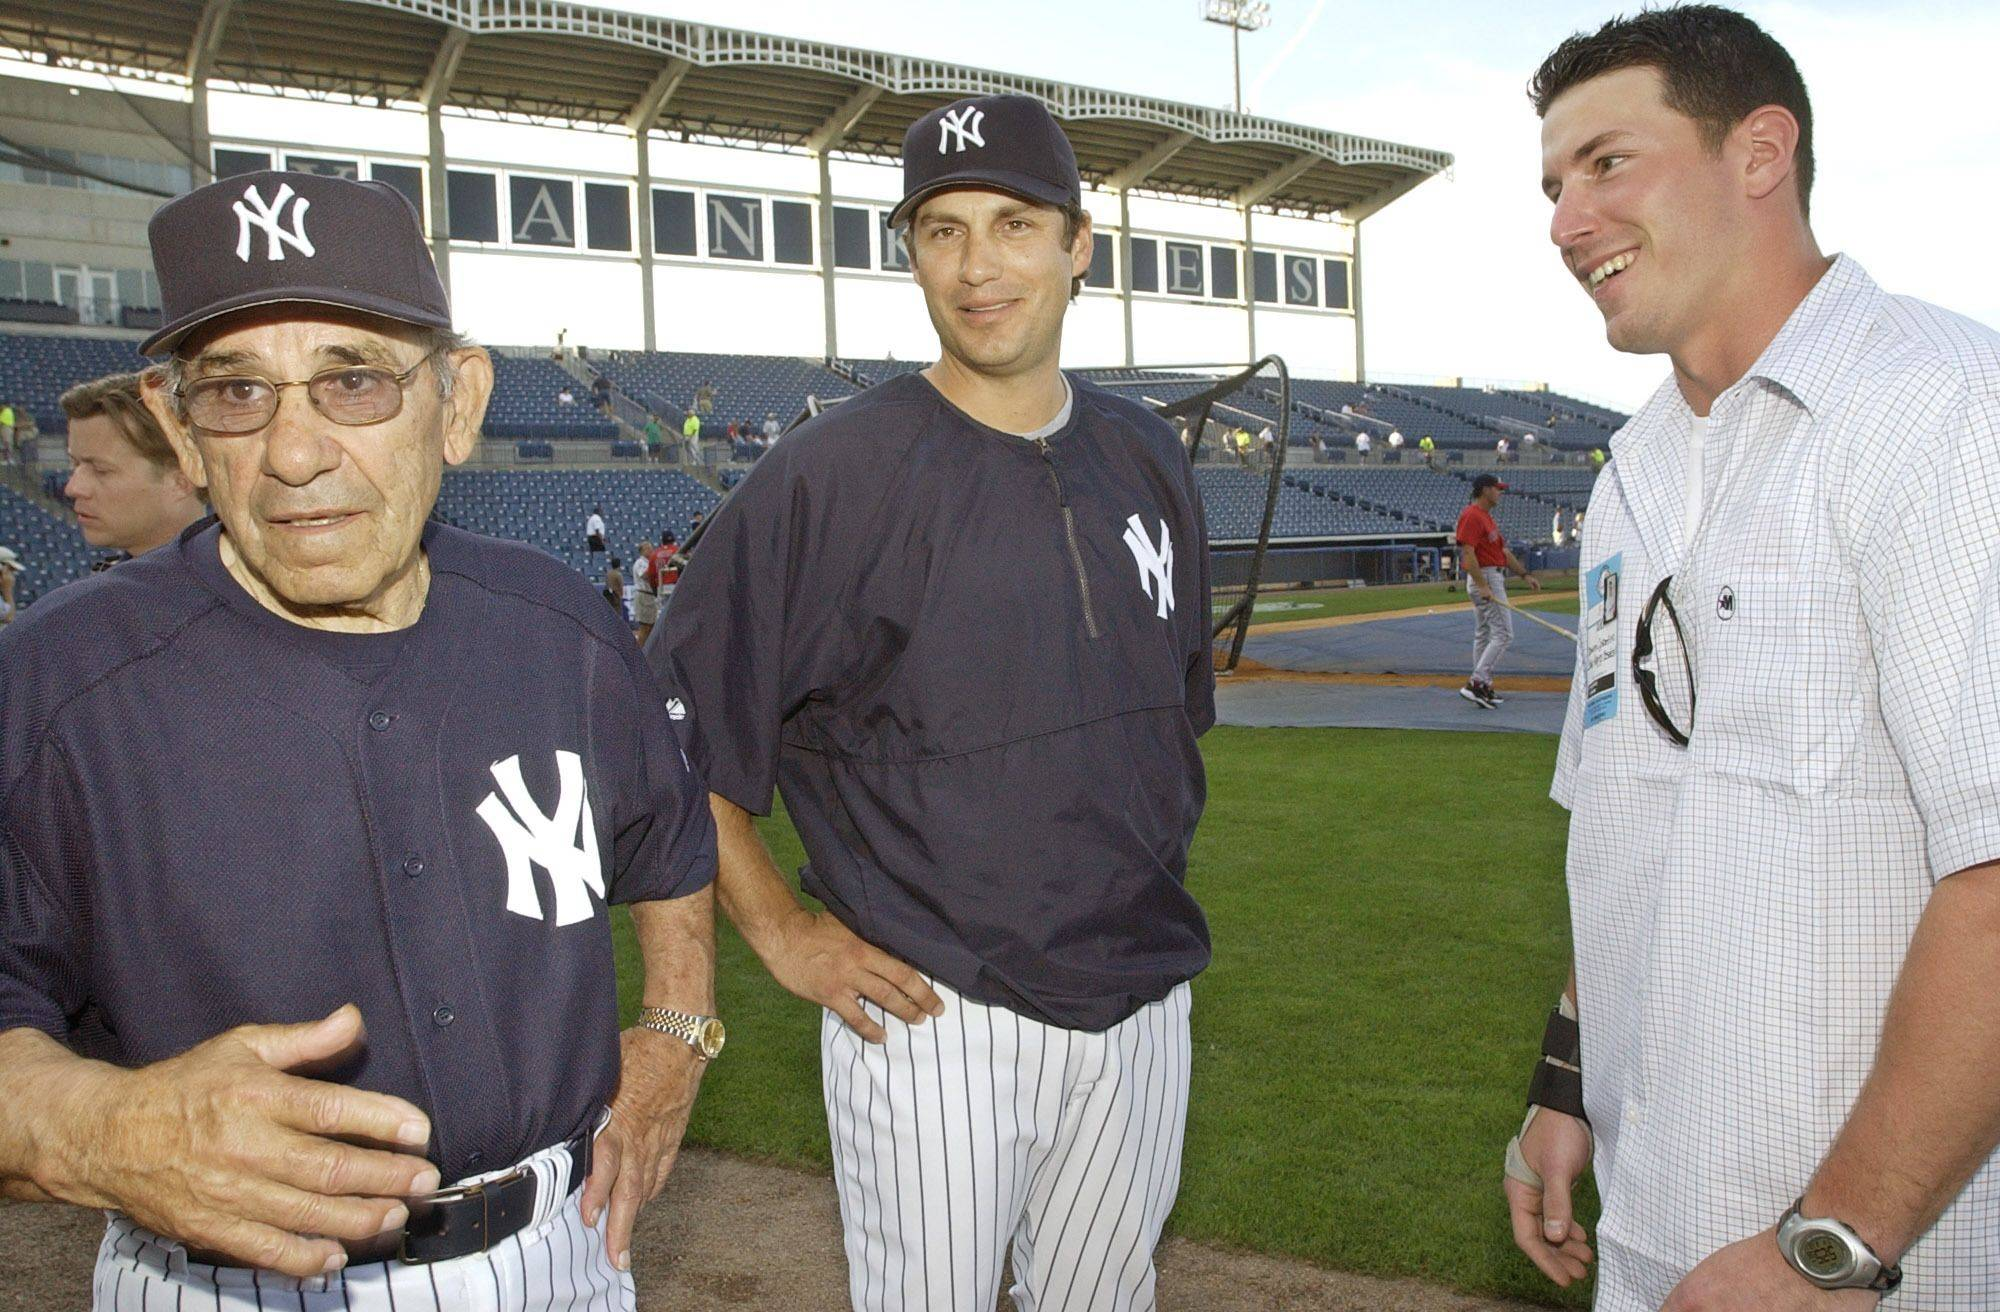 New York Yankees legend Yogi Berra, left, joins Yankees third baseman Robin Ventura, center and Damon Constantino of Salve Regina University in Newport, R.I., on the field before the Yankees night game against the Boston Red Sox, Thursday, March 13, 2003, in Tampa, Fla. Constantino set a new record for consecutive hits by a college baseball player with 60, breaking Ventura's record of 58 set in 1987 at Oklahomas State University.